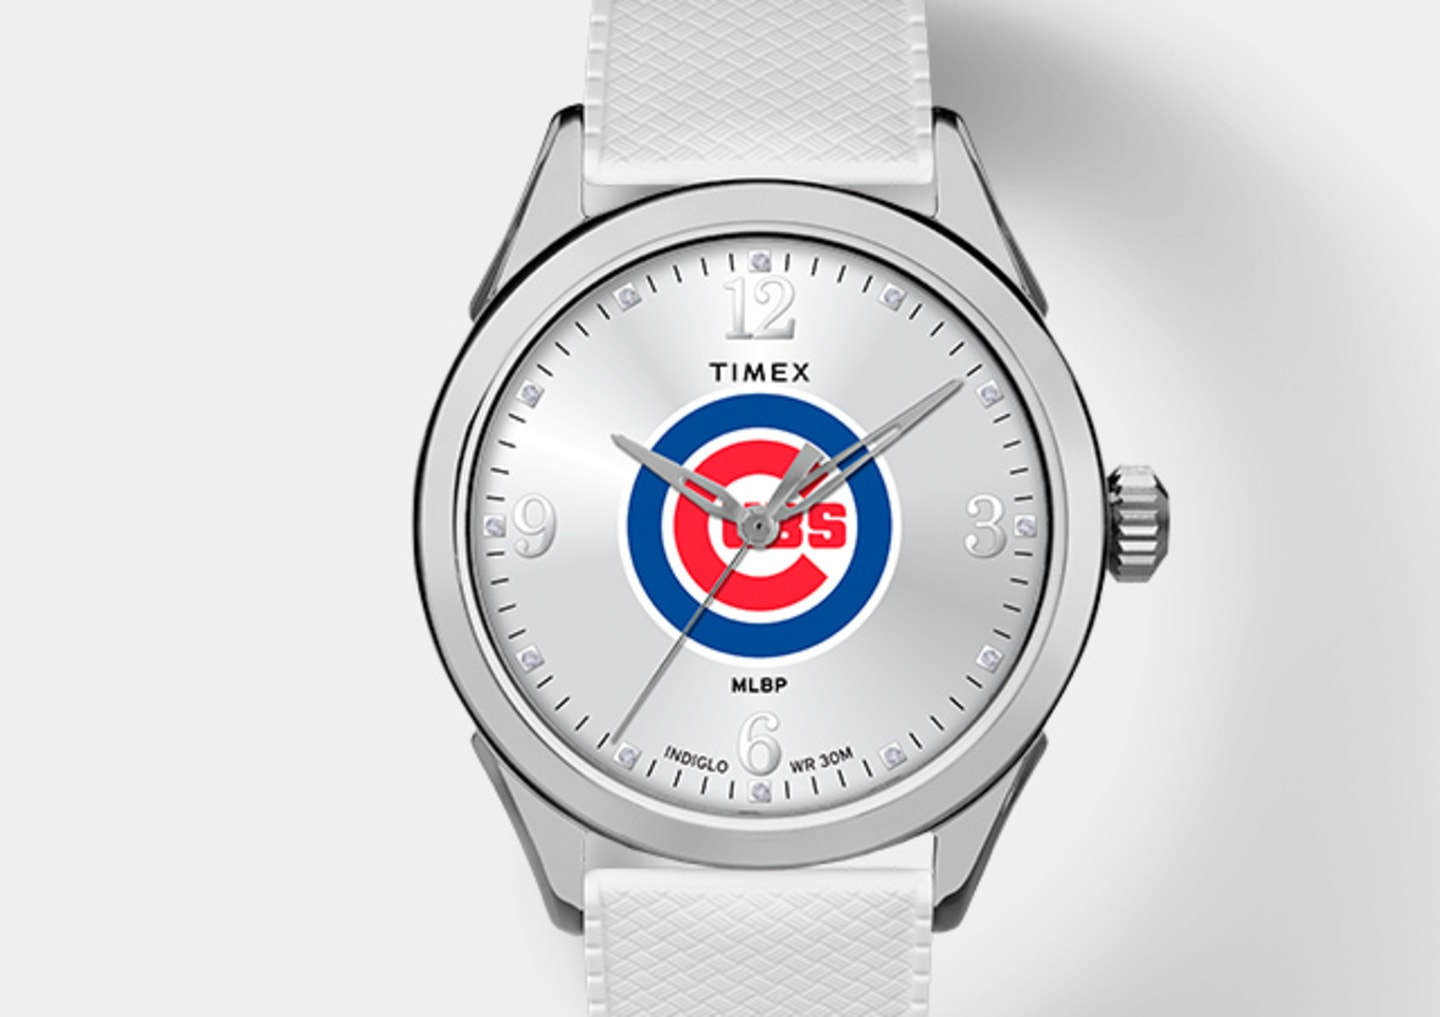 Silver Cubs Women's Watch With Silver Straps and Logo In The Center